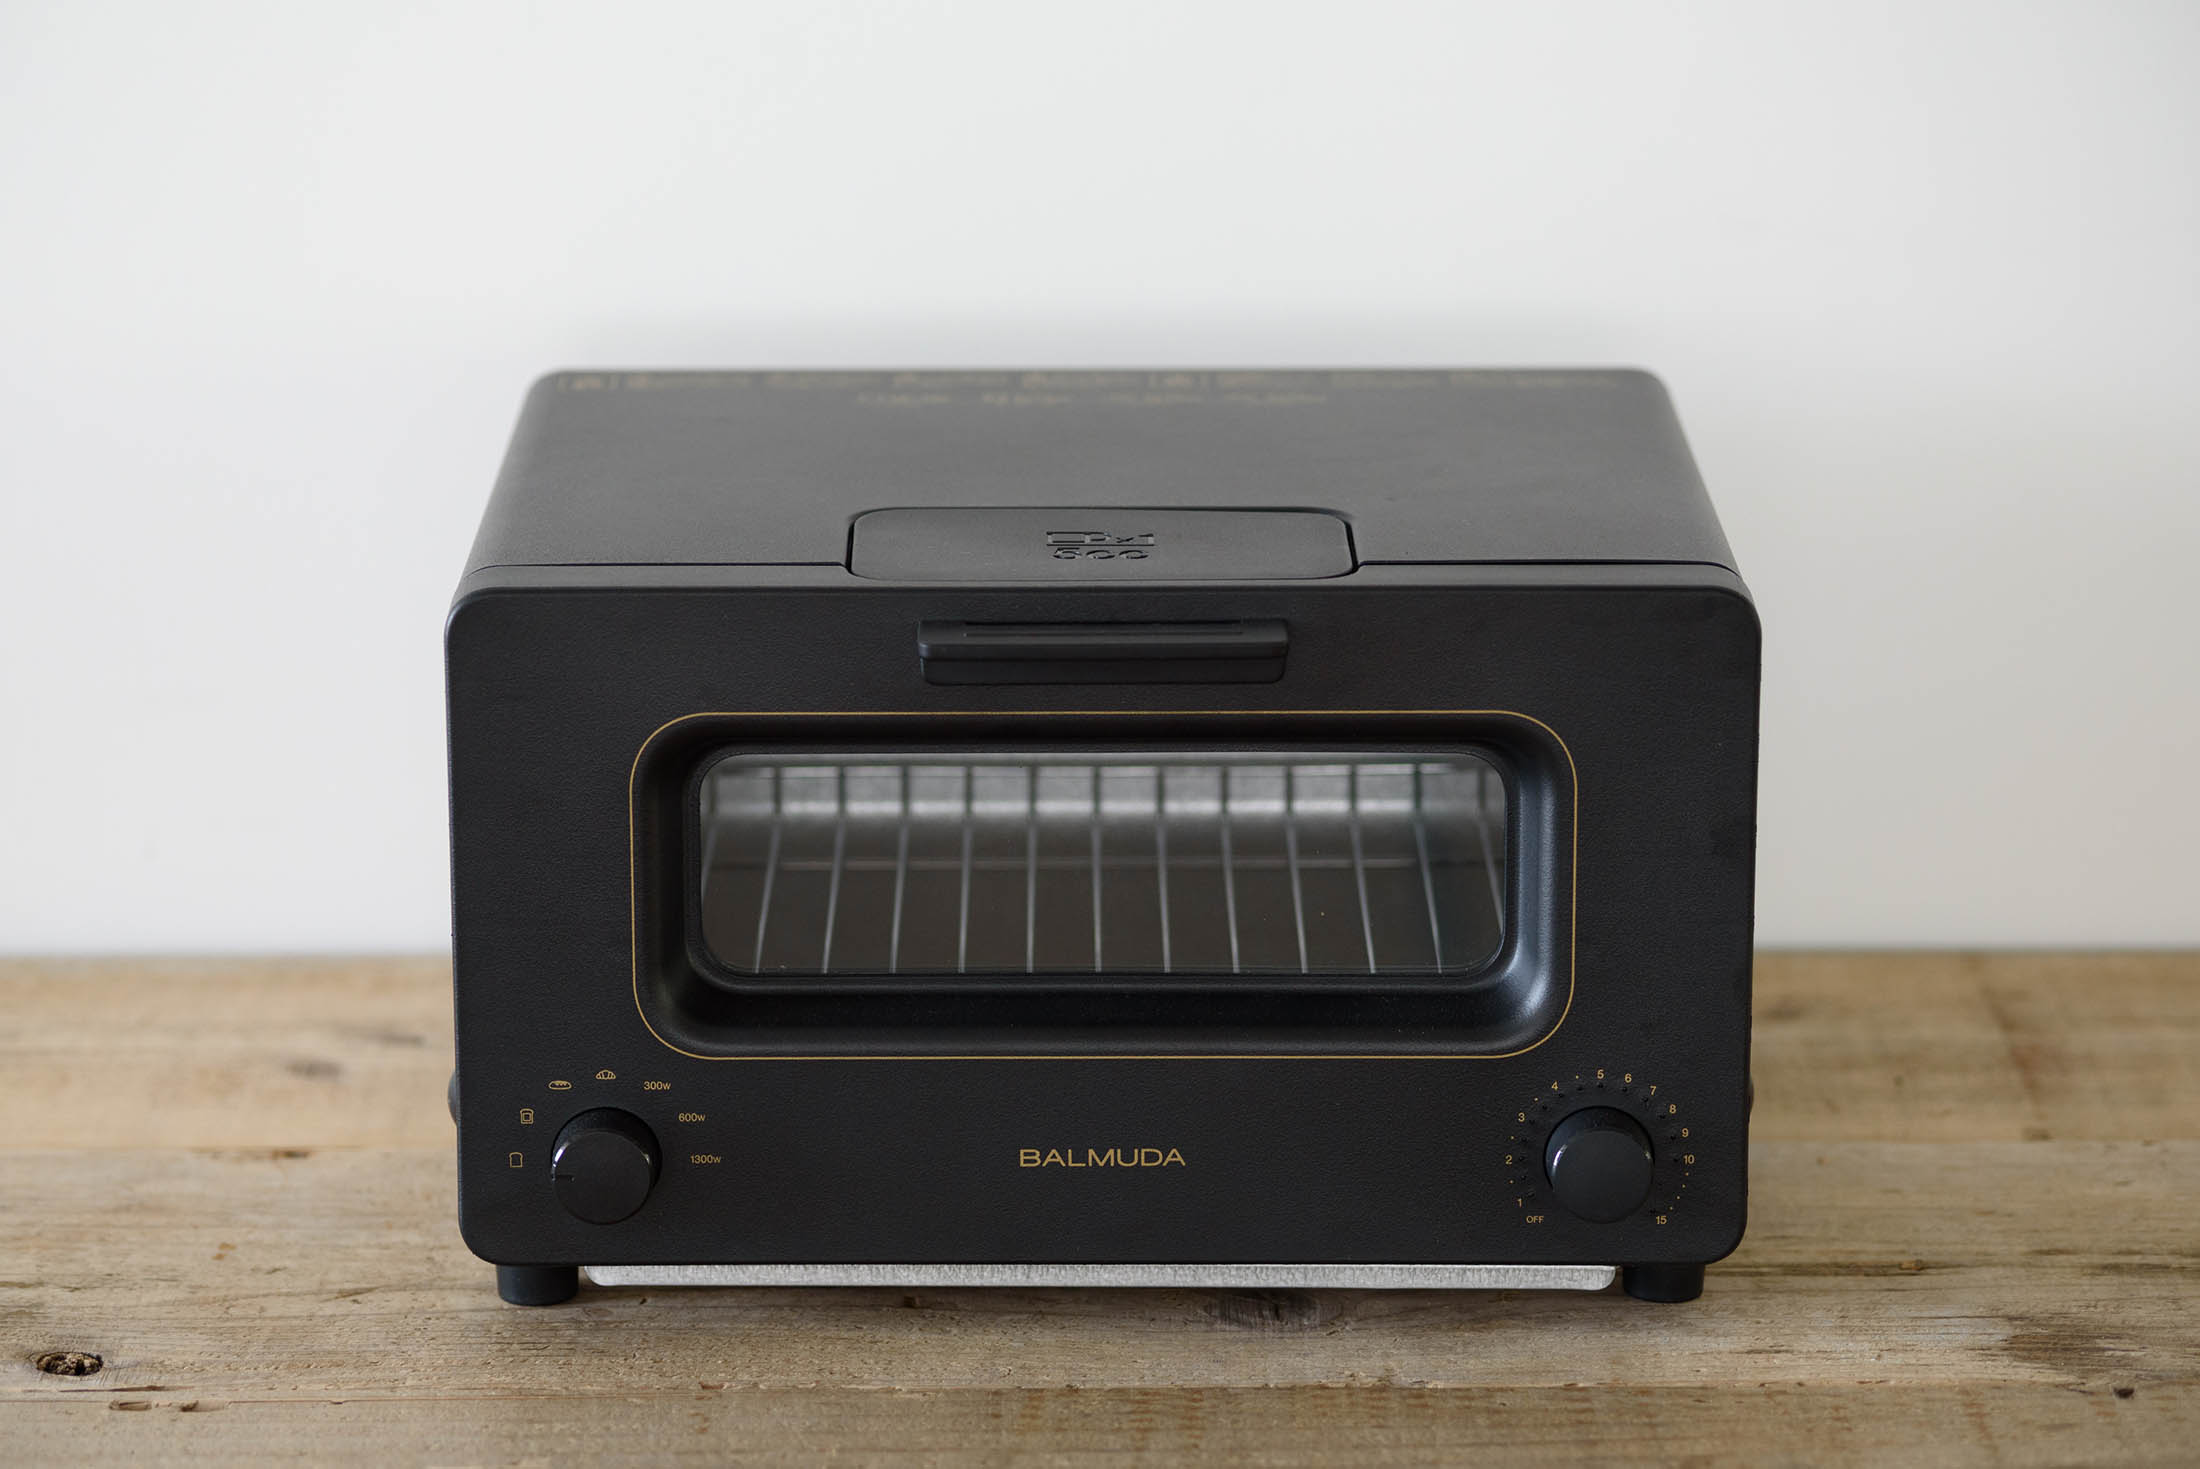 The Balmuda toaster looks ordinary on the outside.